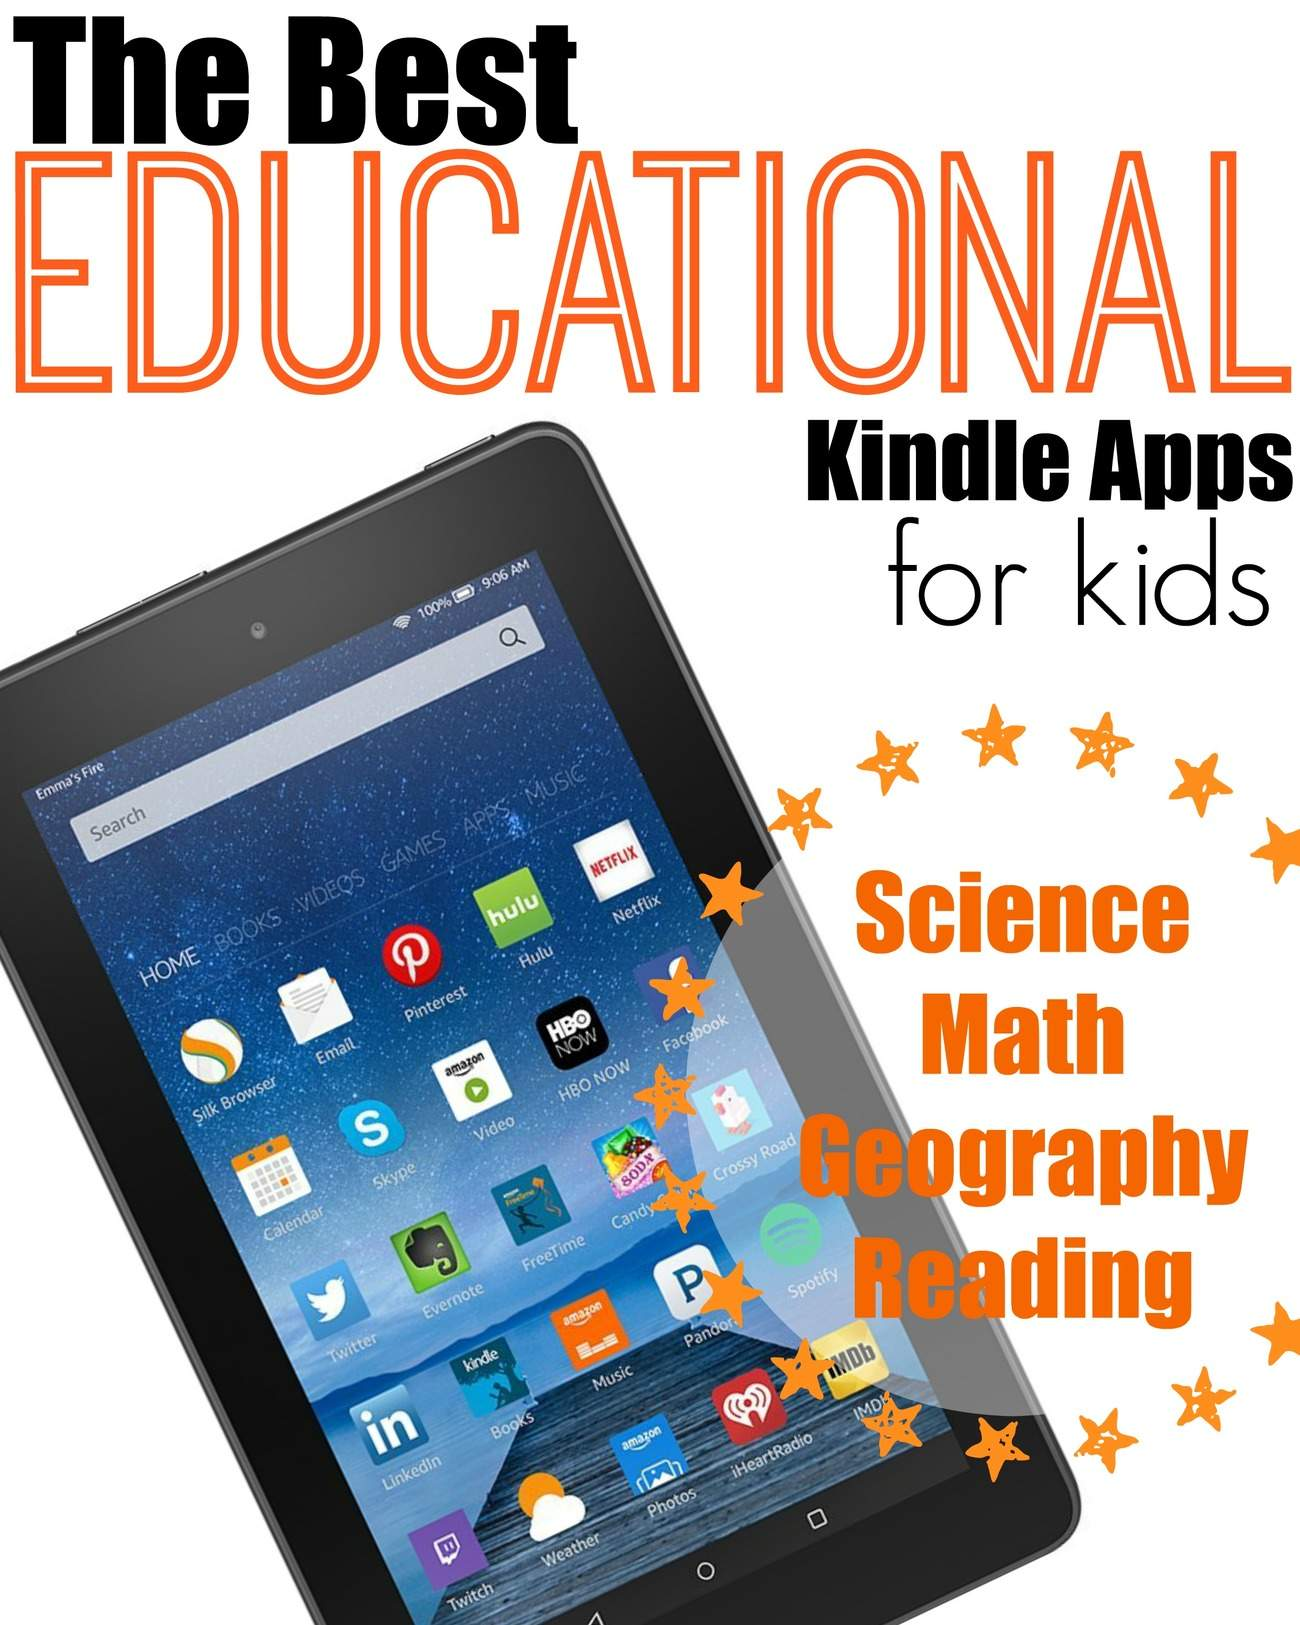 Kids Kindle Fire Games - 10 Best Kindle Fire Games for Kids